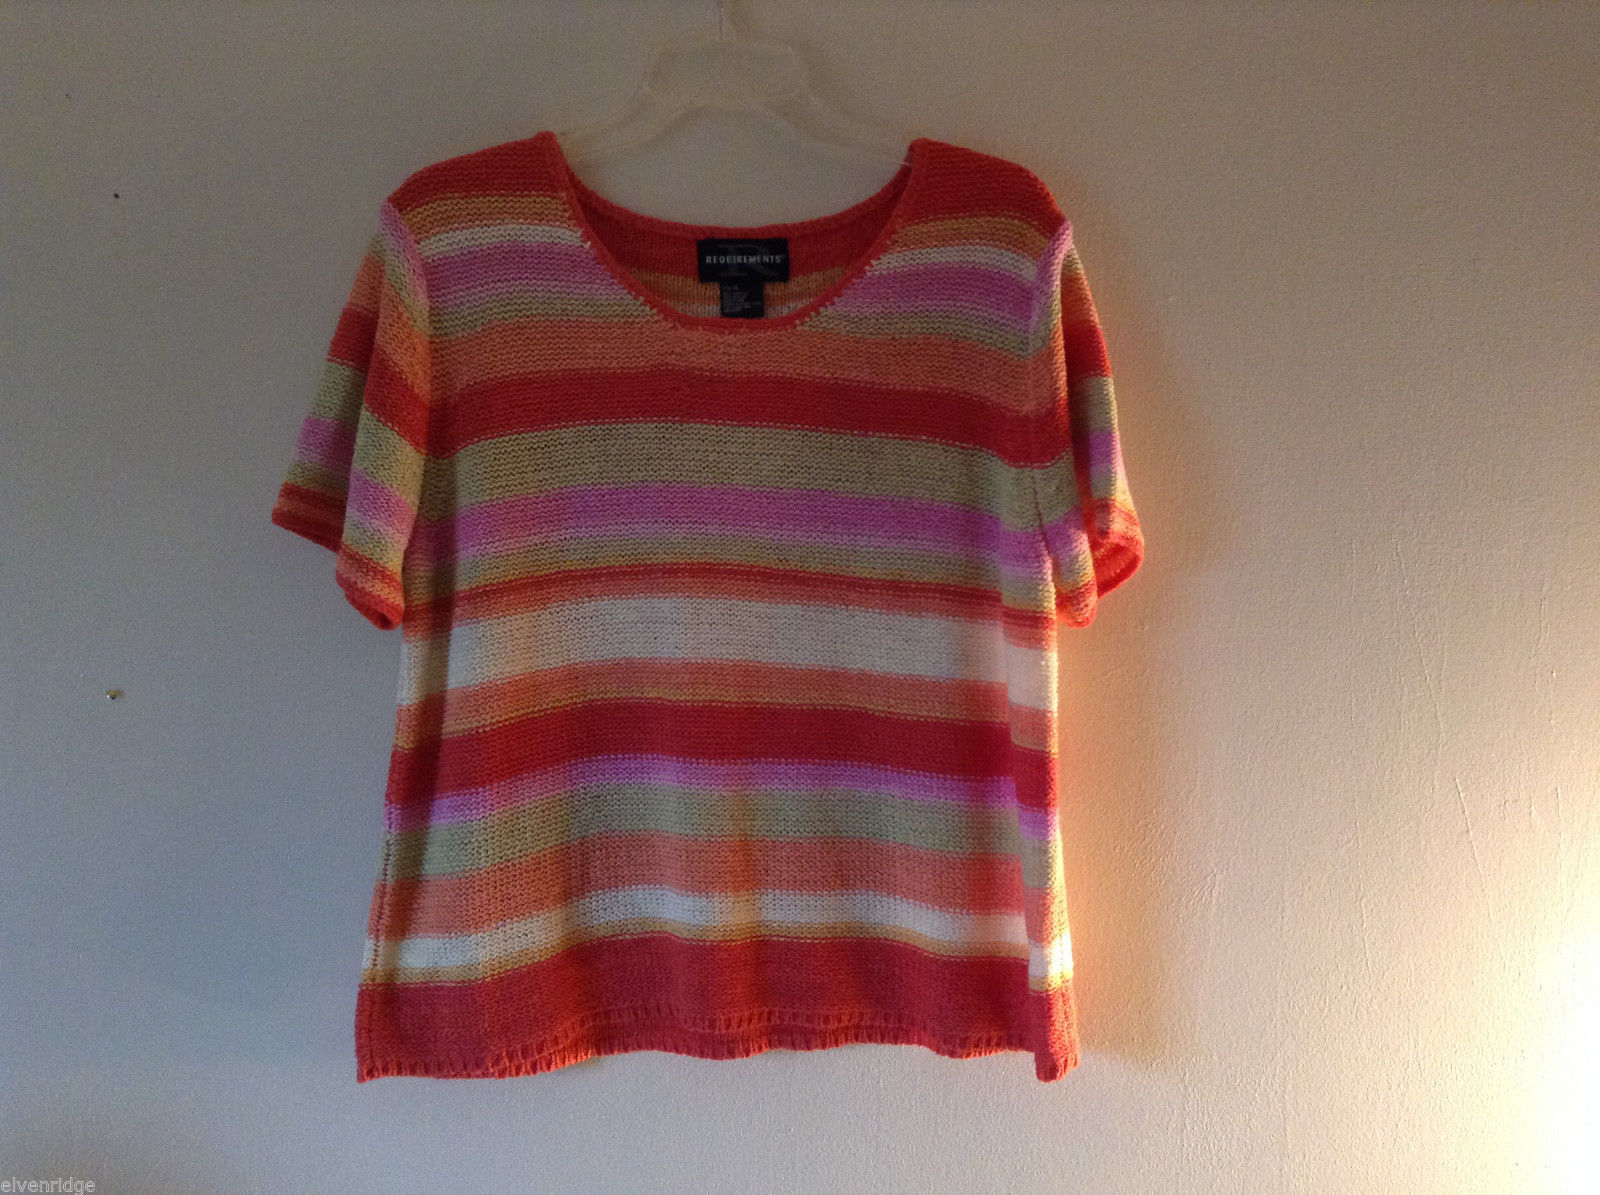 Requirements Women's Size XL Sweater Colorful Striped Coral Orange Green Pink